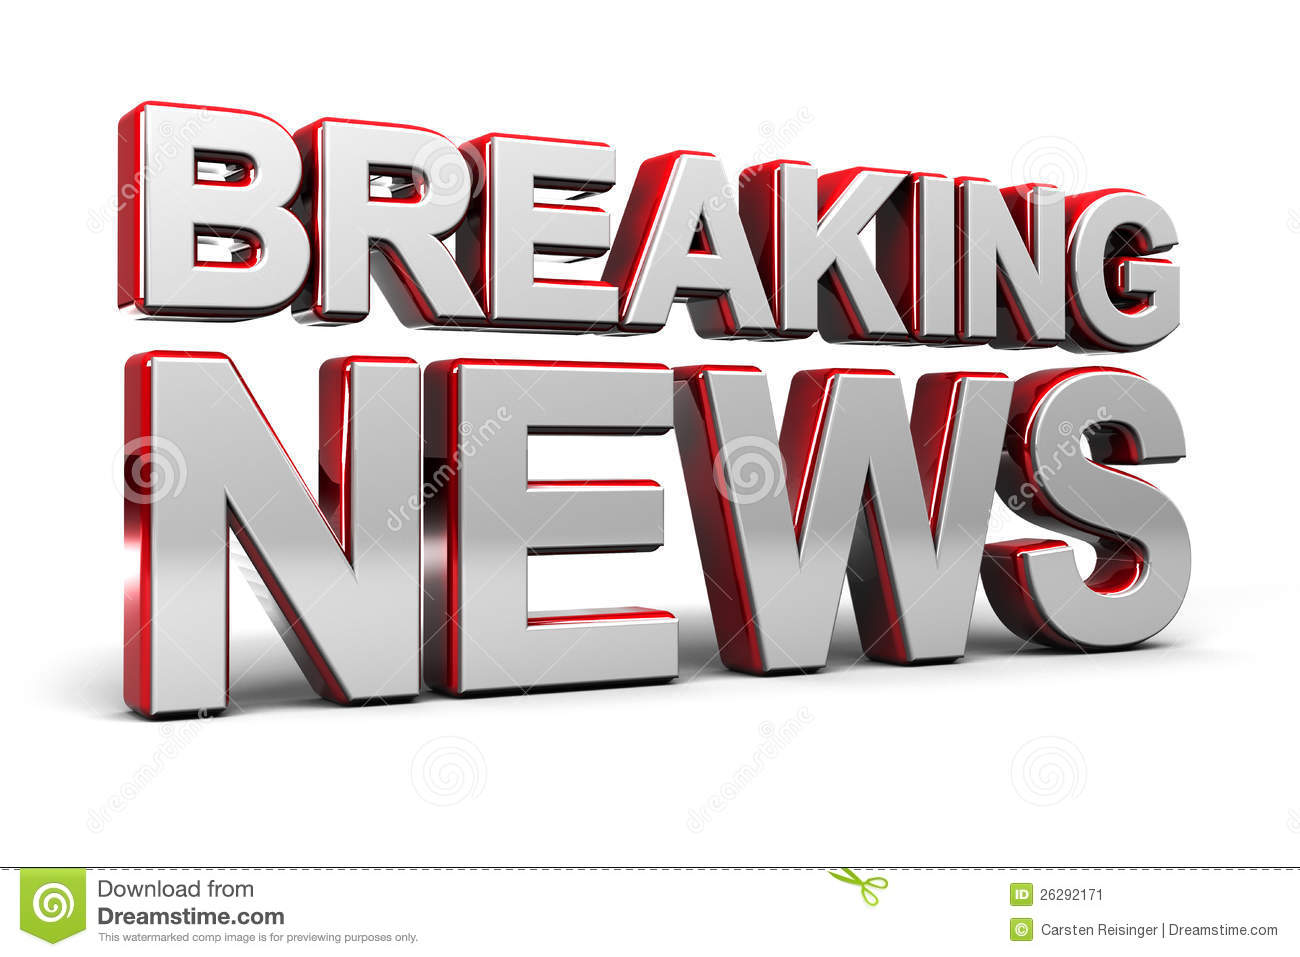 breaking news clipart - photo #19